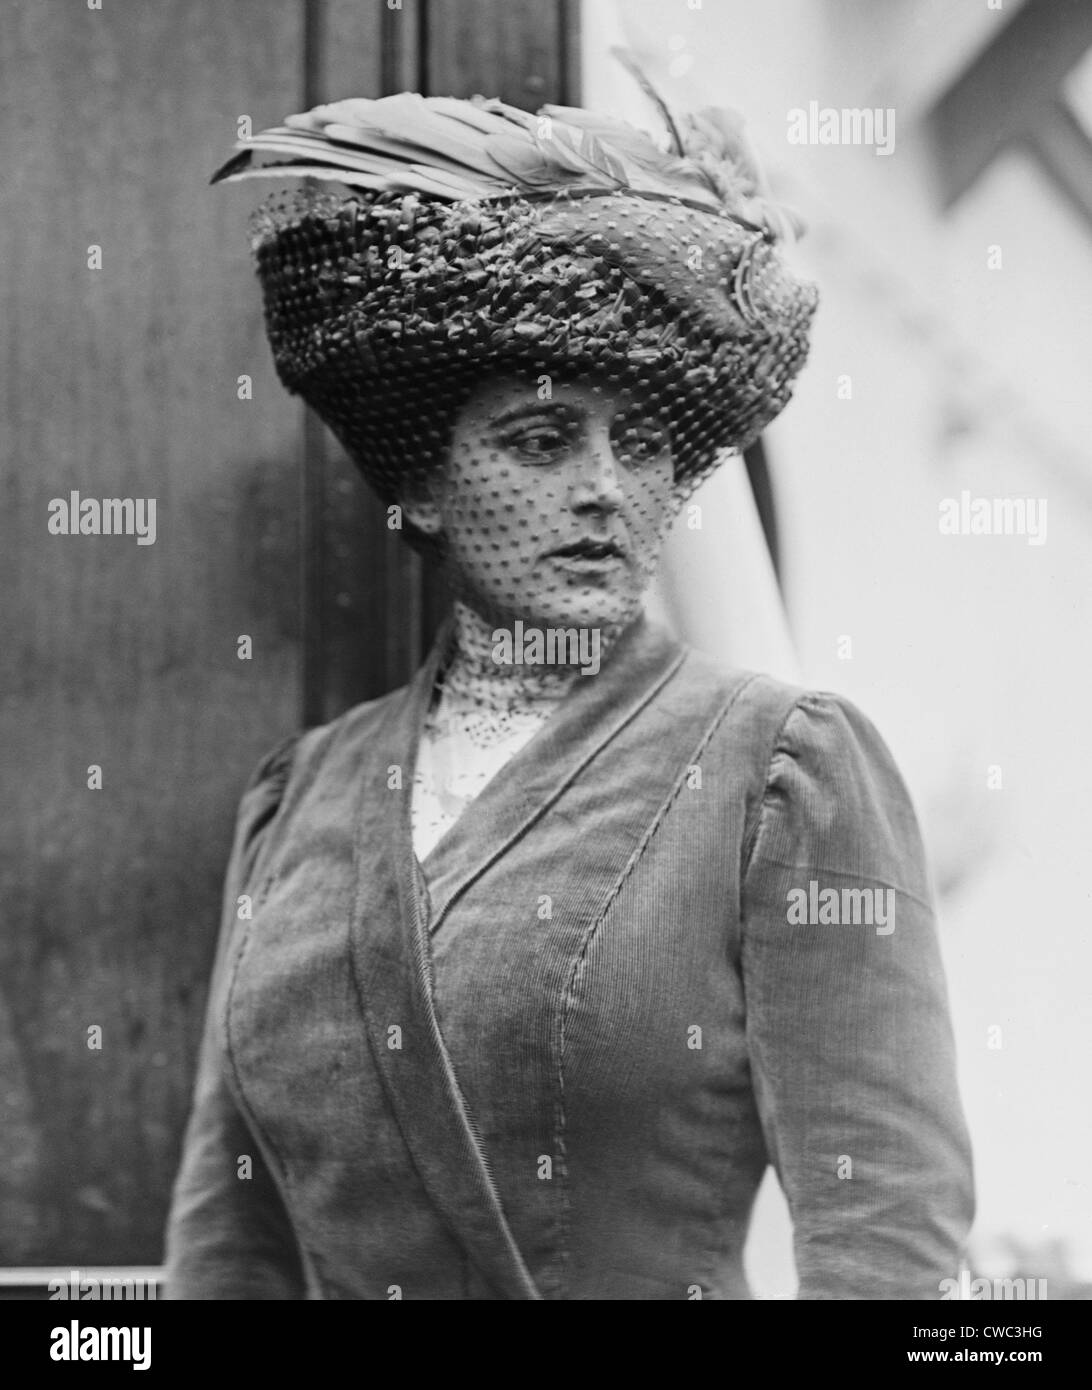 Maxine Elliott 1868-1940 was one of many actresses romantically linked with J.P. Morgan. 1910. (BSLOC_2010_18_16) - Stock Image